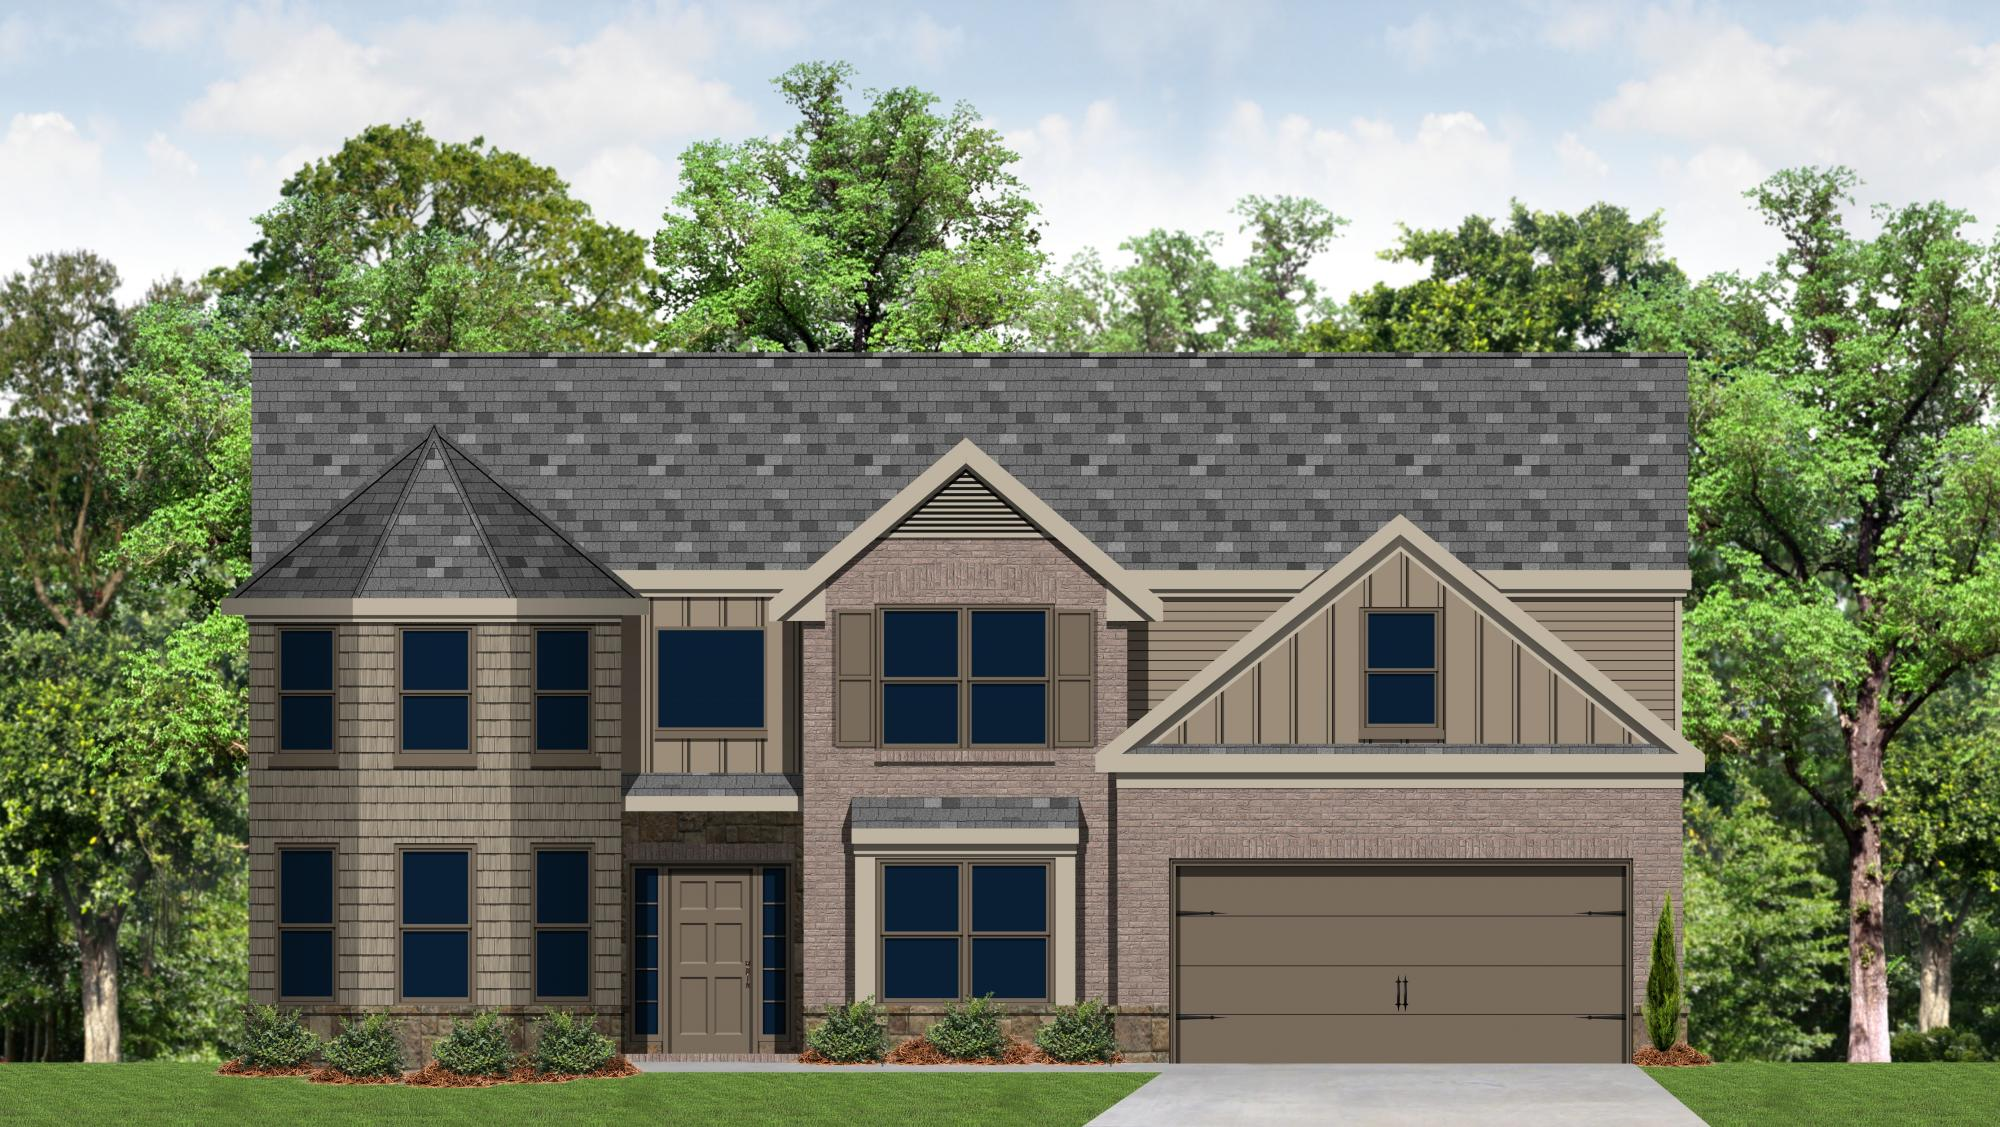 Almont Homes is the new home builder